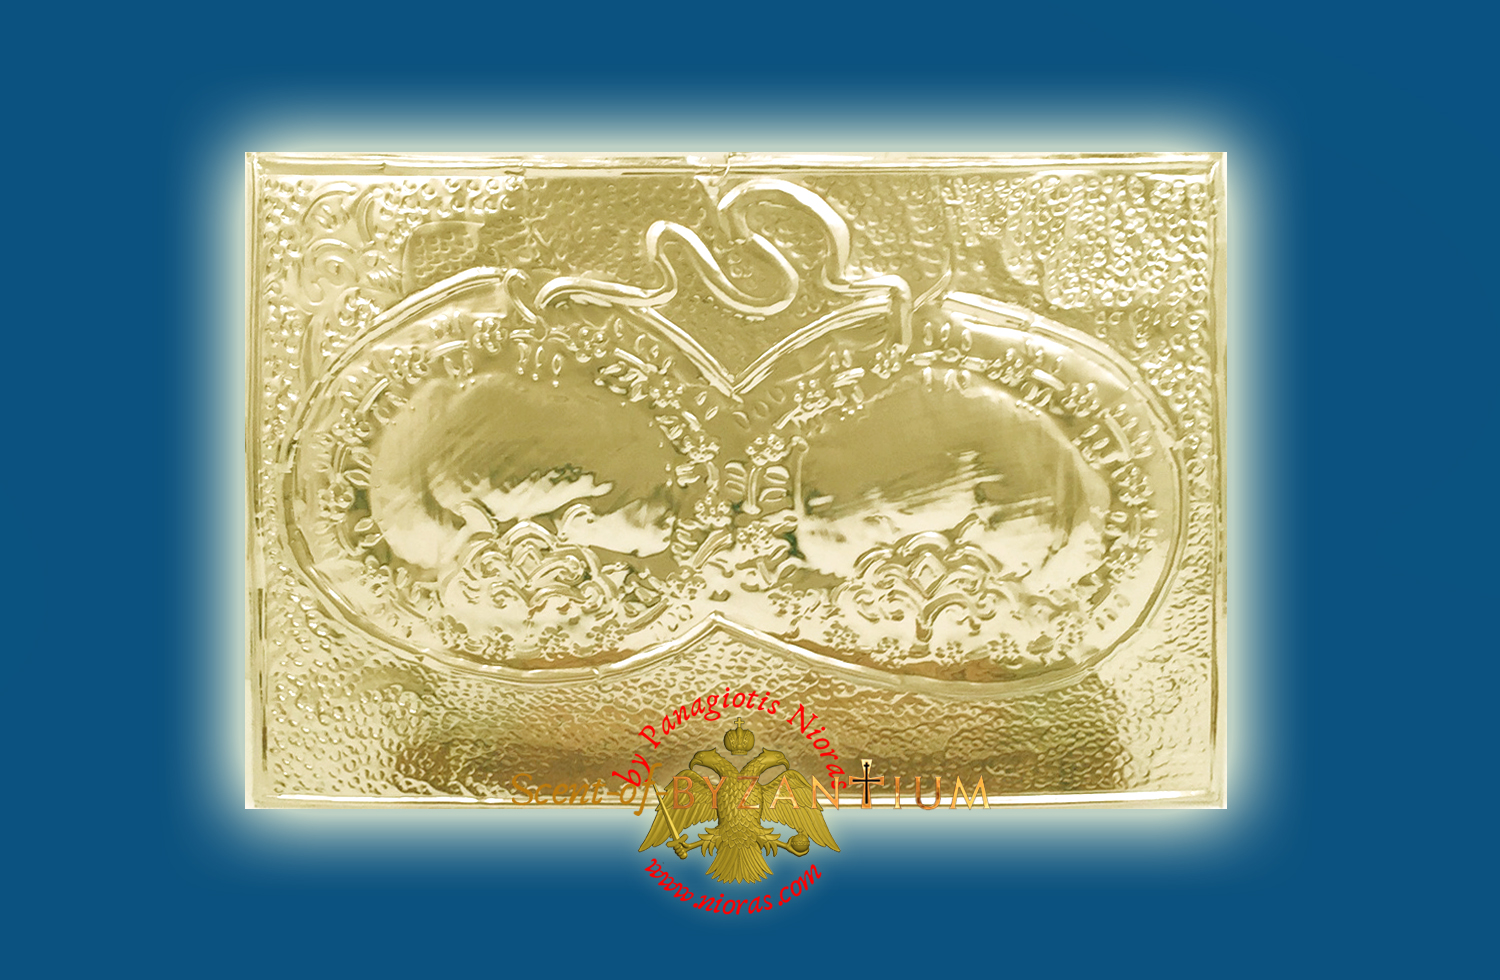 Orthodox Metal Tama (Votive) Wedding Crowns ExVoto Gold Plated Milagros Special Order 22x35cm